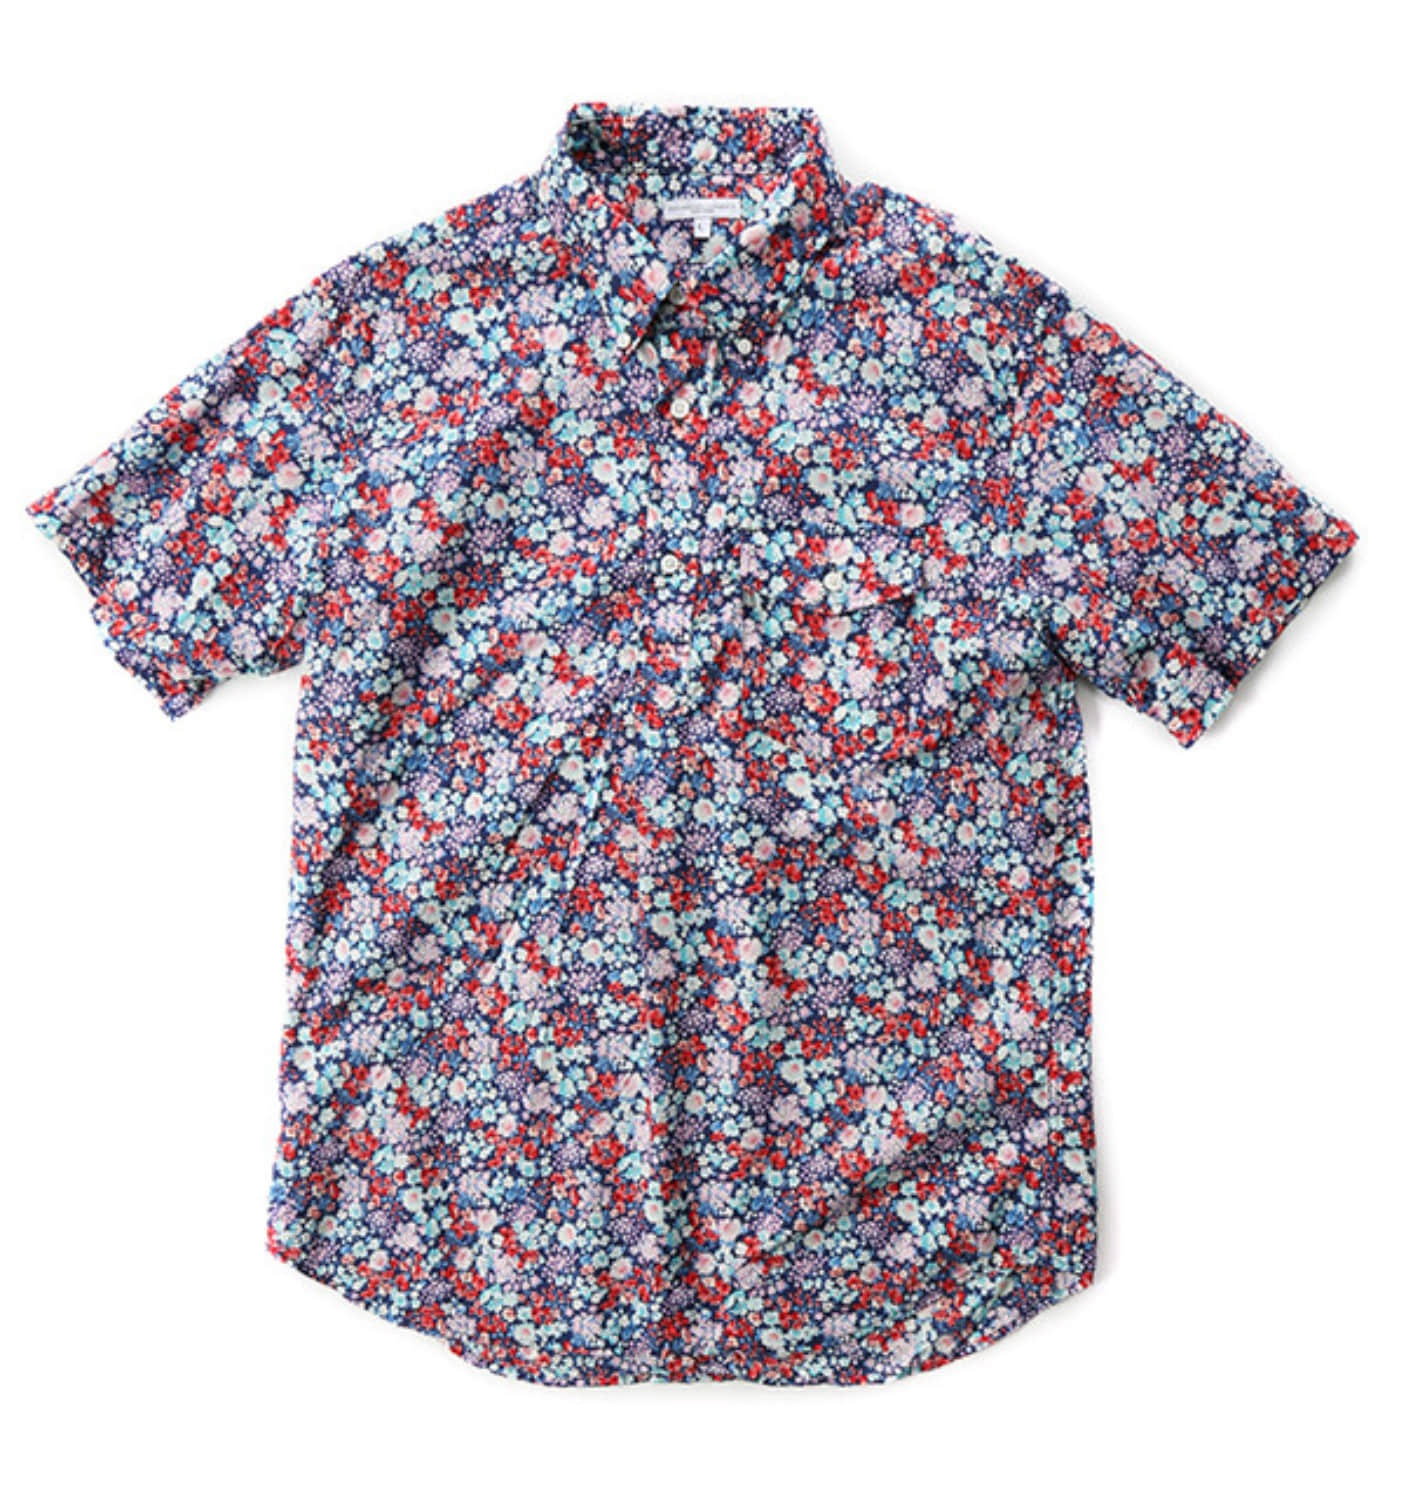 POPOVER BD SHIRT NAVY/RED/LT.BLUE FLORAL